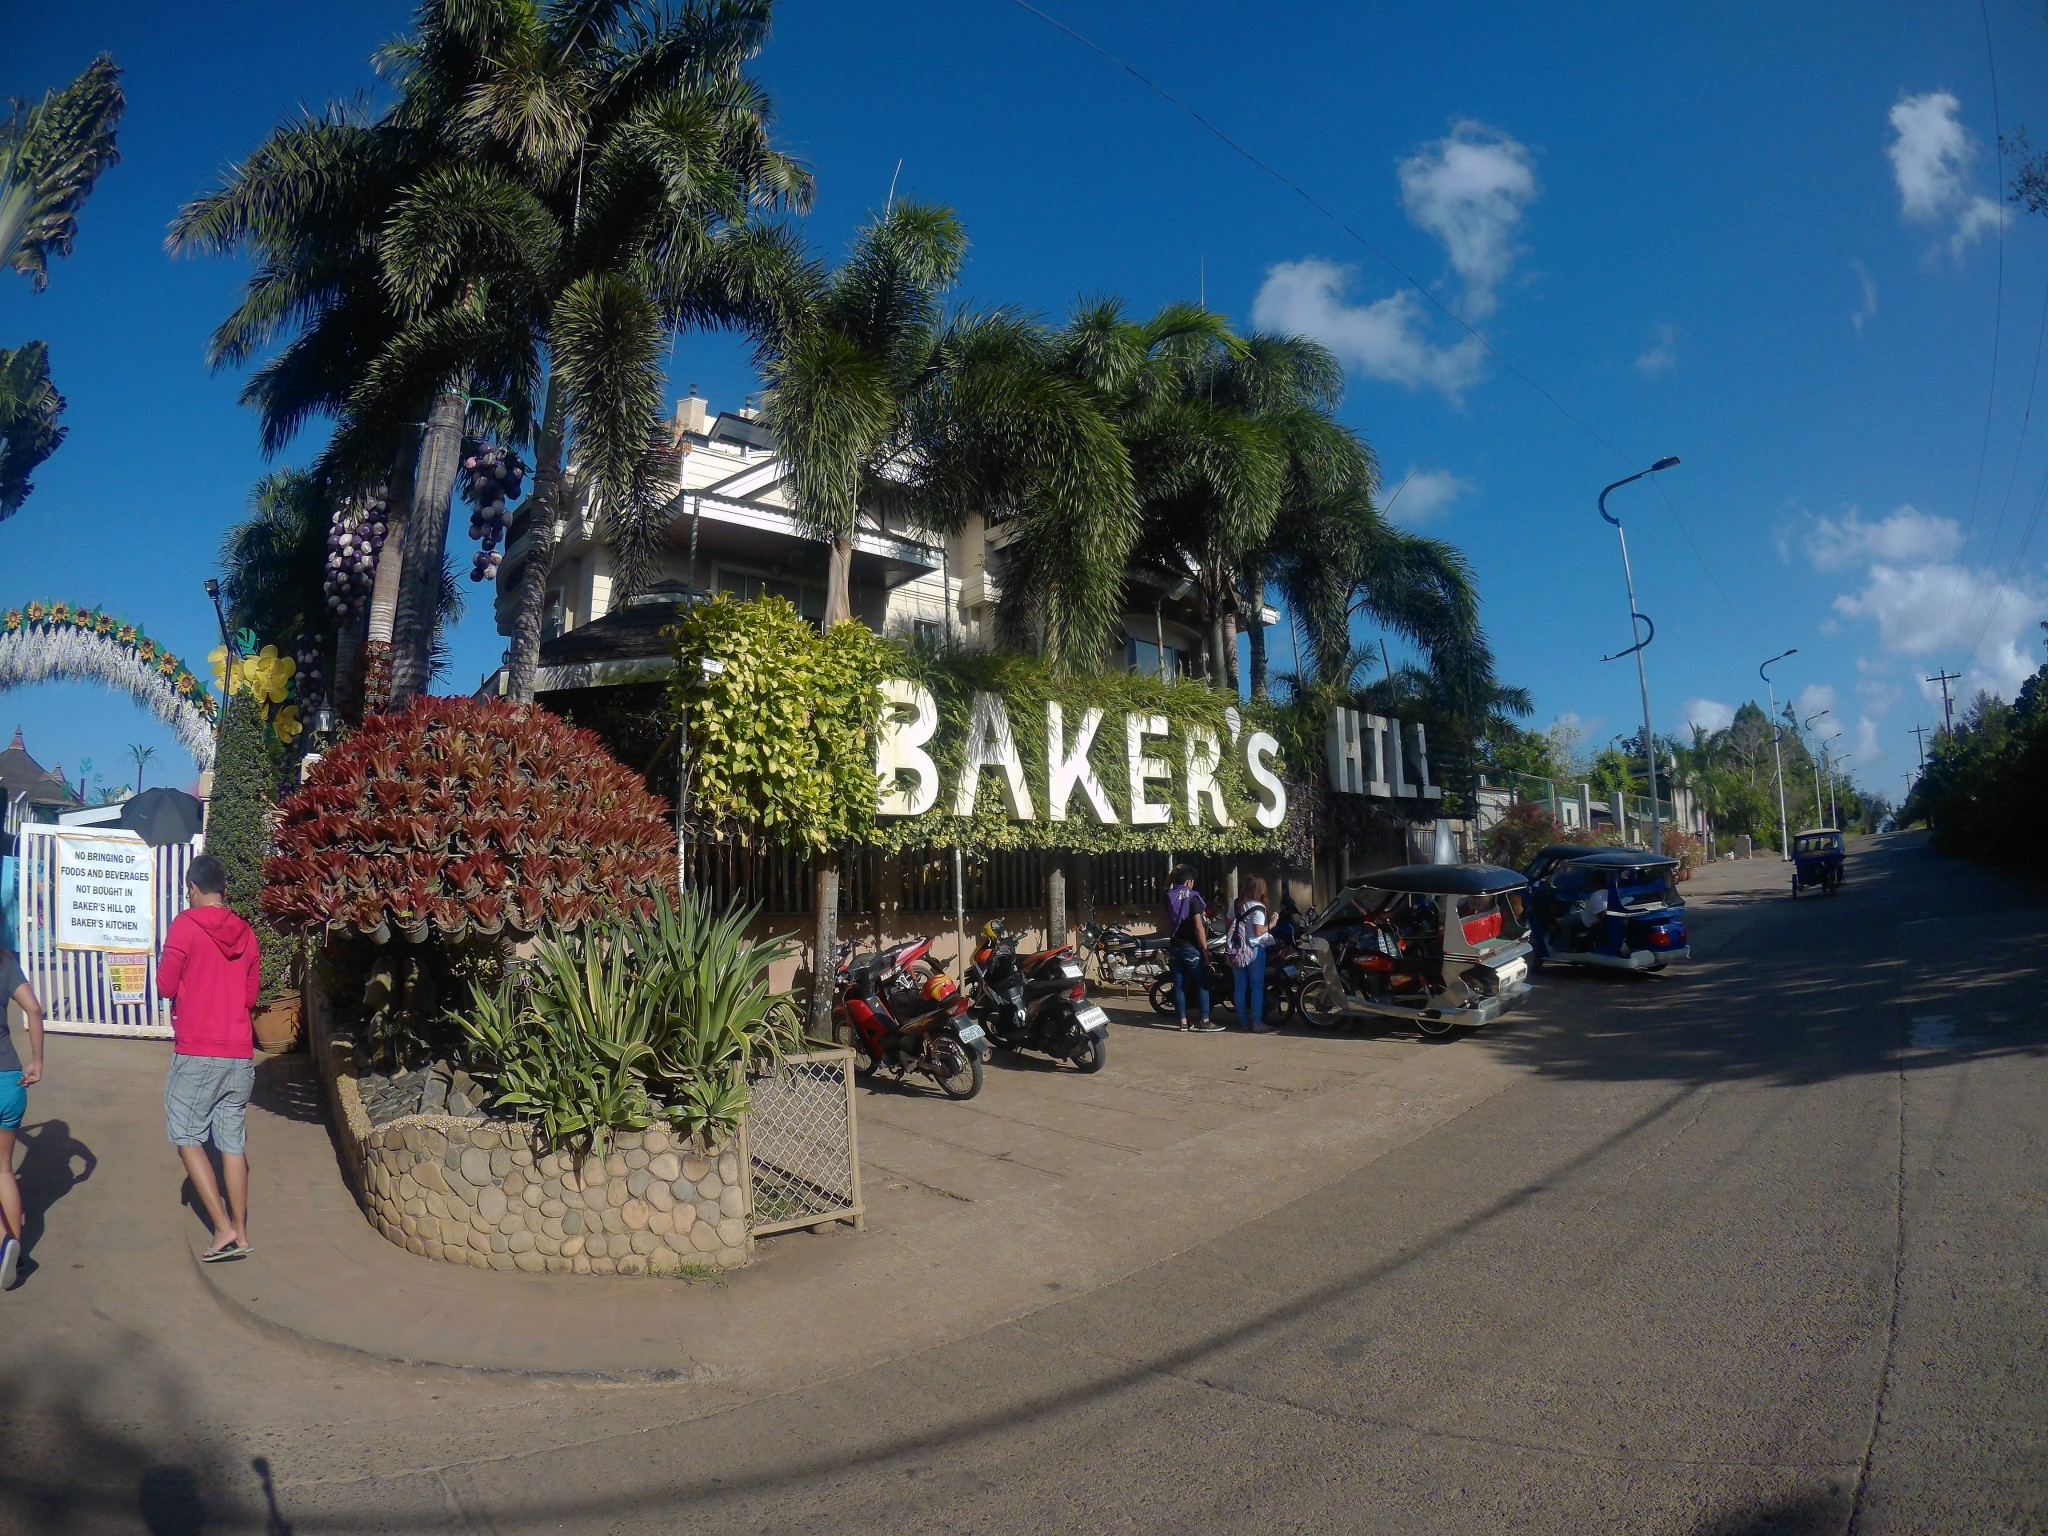 Baker's Hill, Palawan: Not Just Baked Goodies for Pasalubong